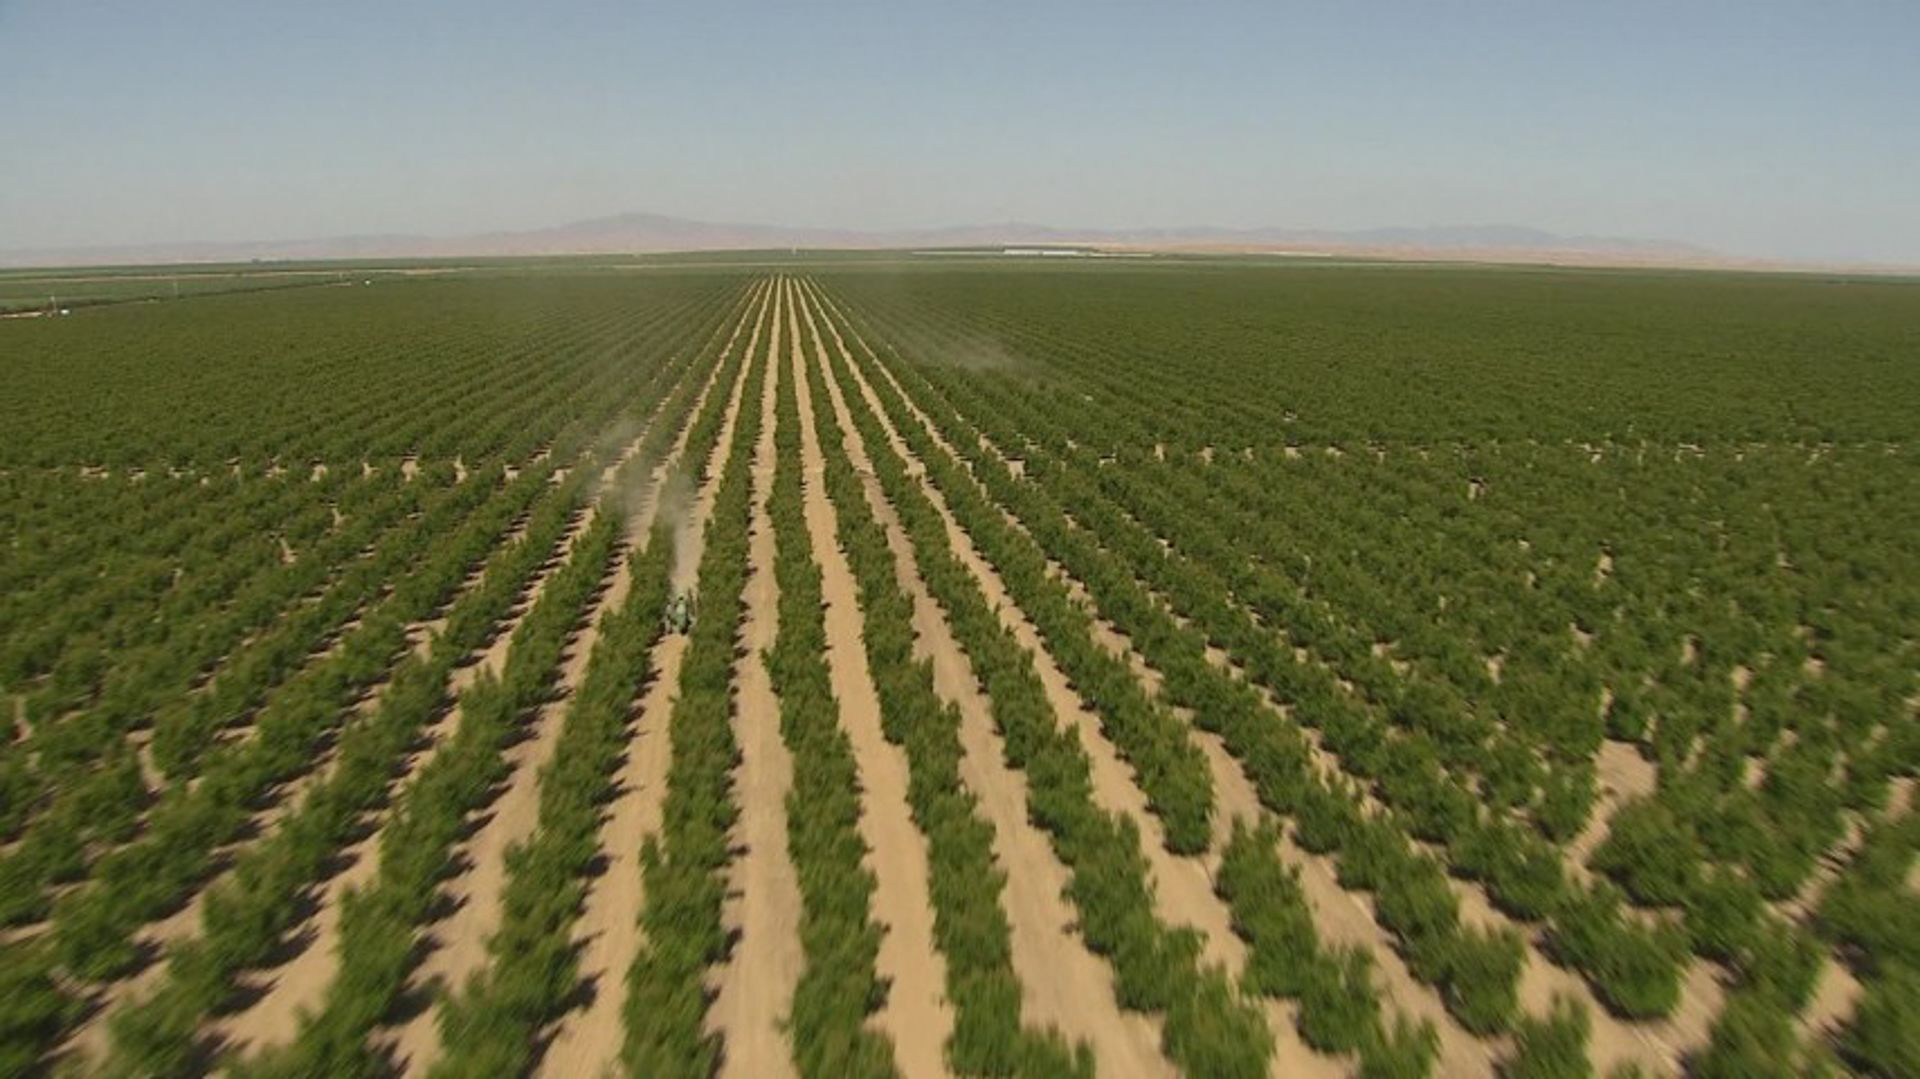 agroforestry carbon sequestration california central valley orchard high